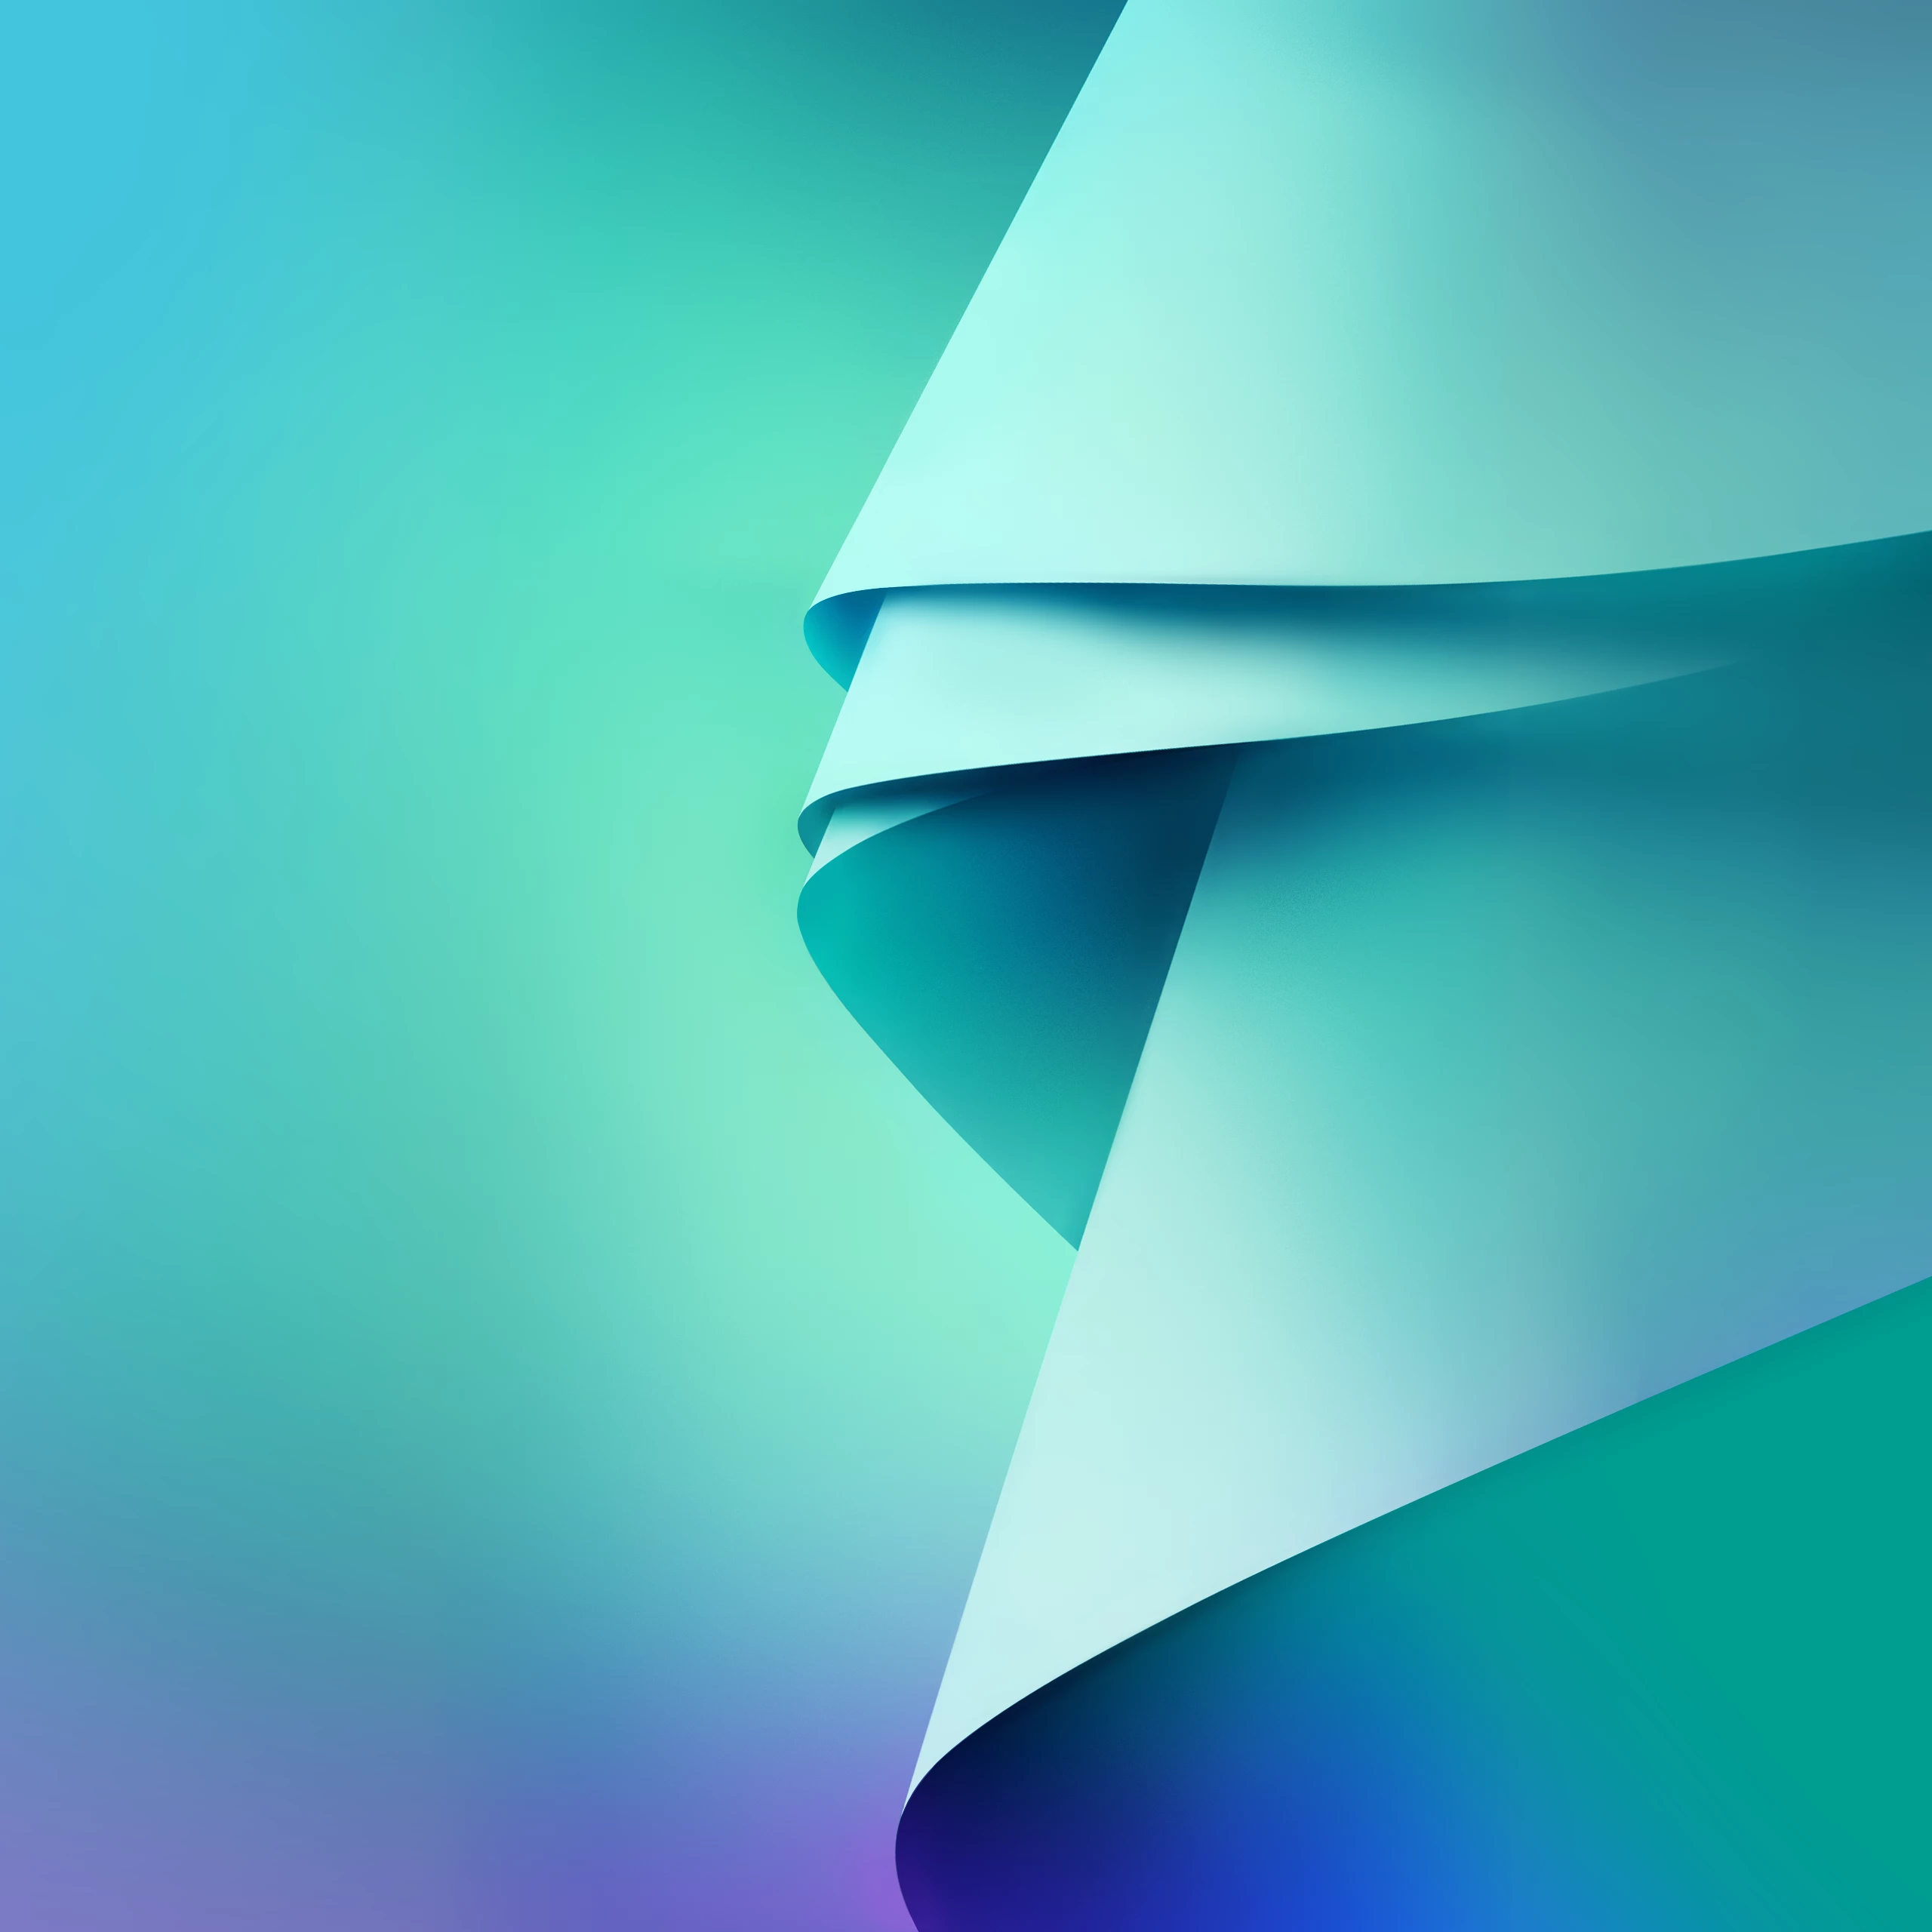 Here are 6 high-resolution stock wallpapers from the Galaxy